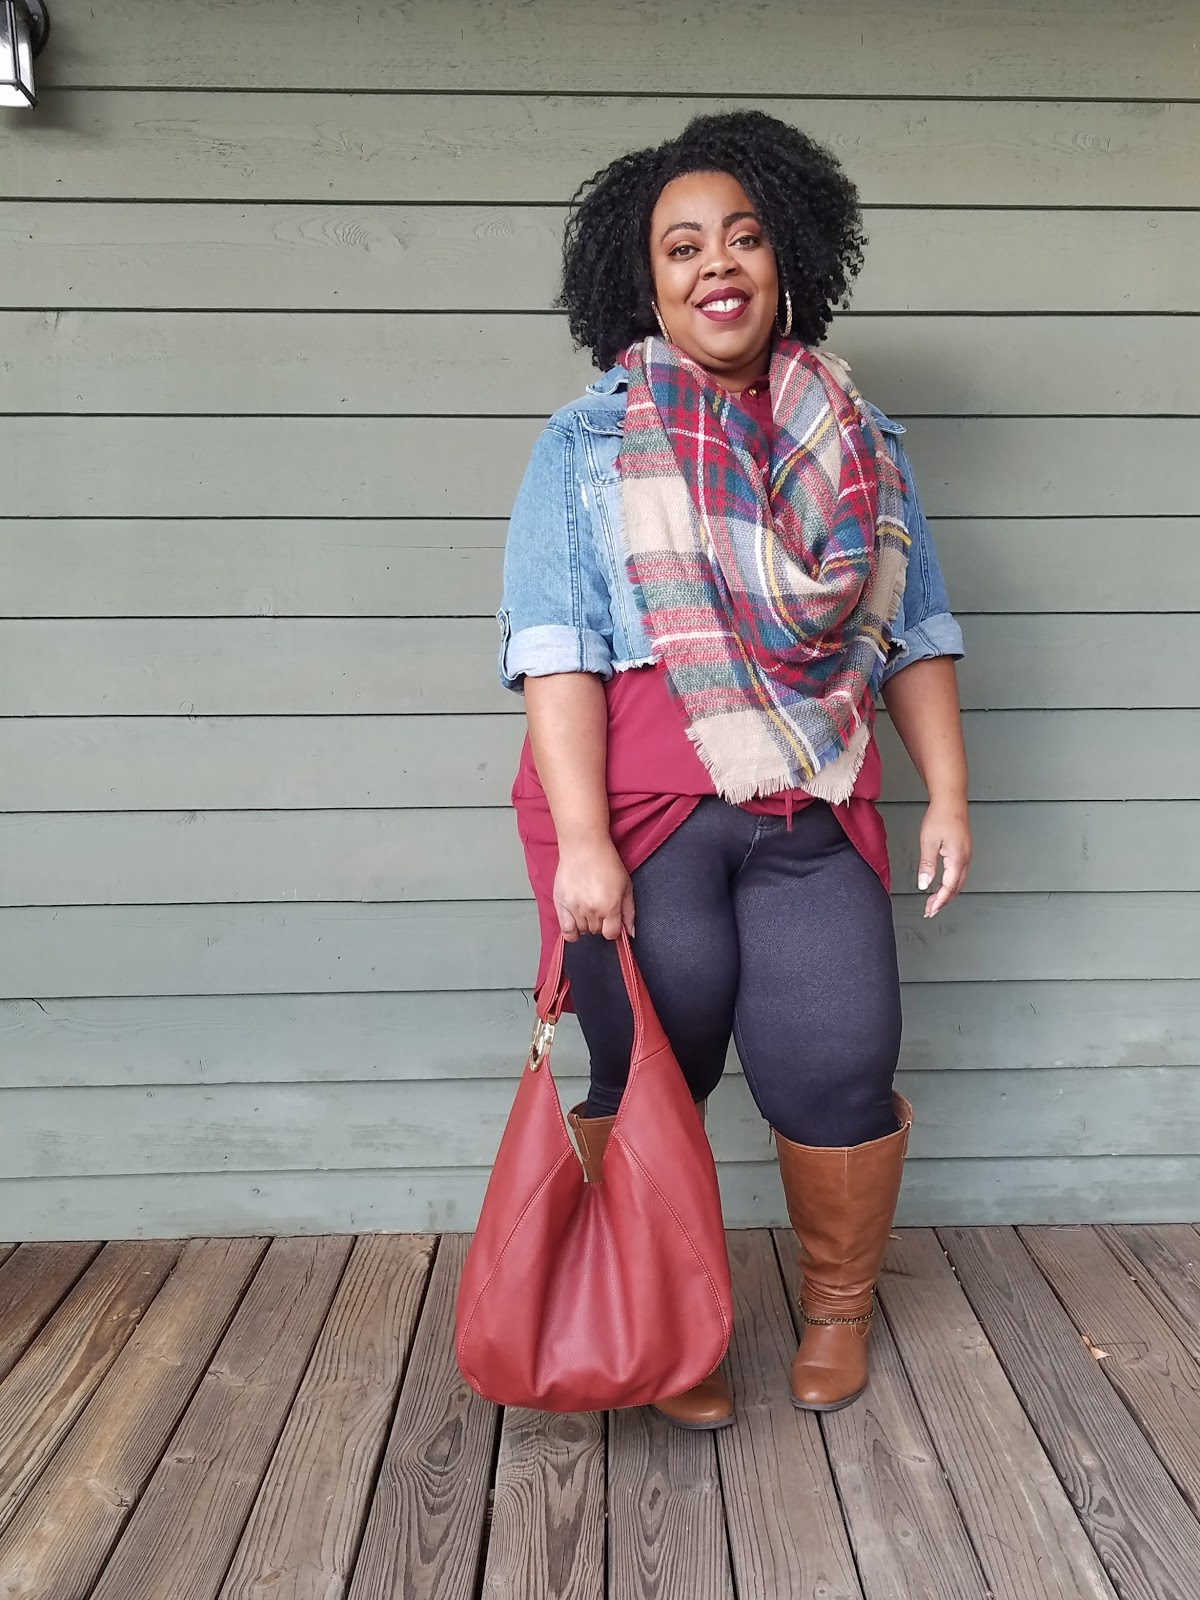 plus size model, denim jacket, plaid, tartan, blanket scarf, hobo bag, tall boots, natural hair, berry lipstick